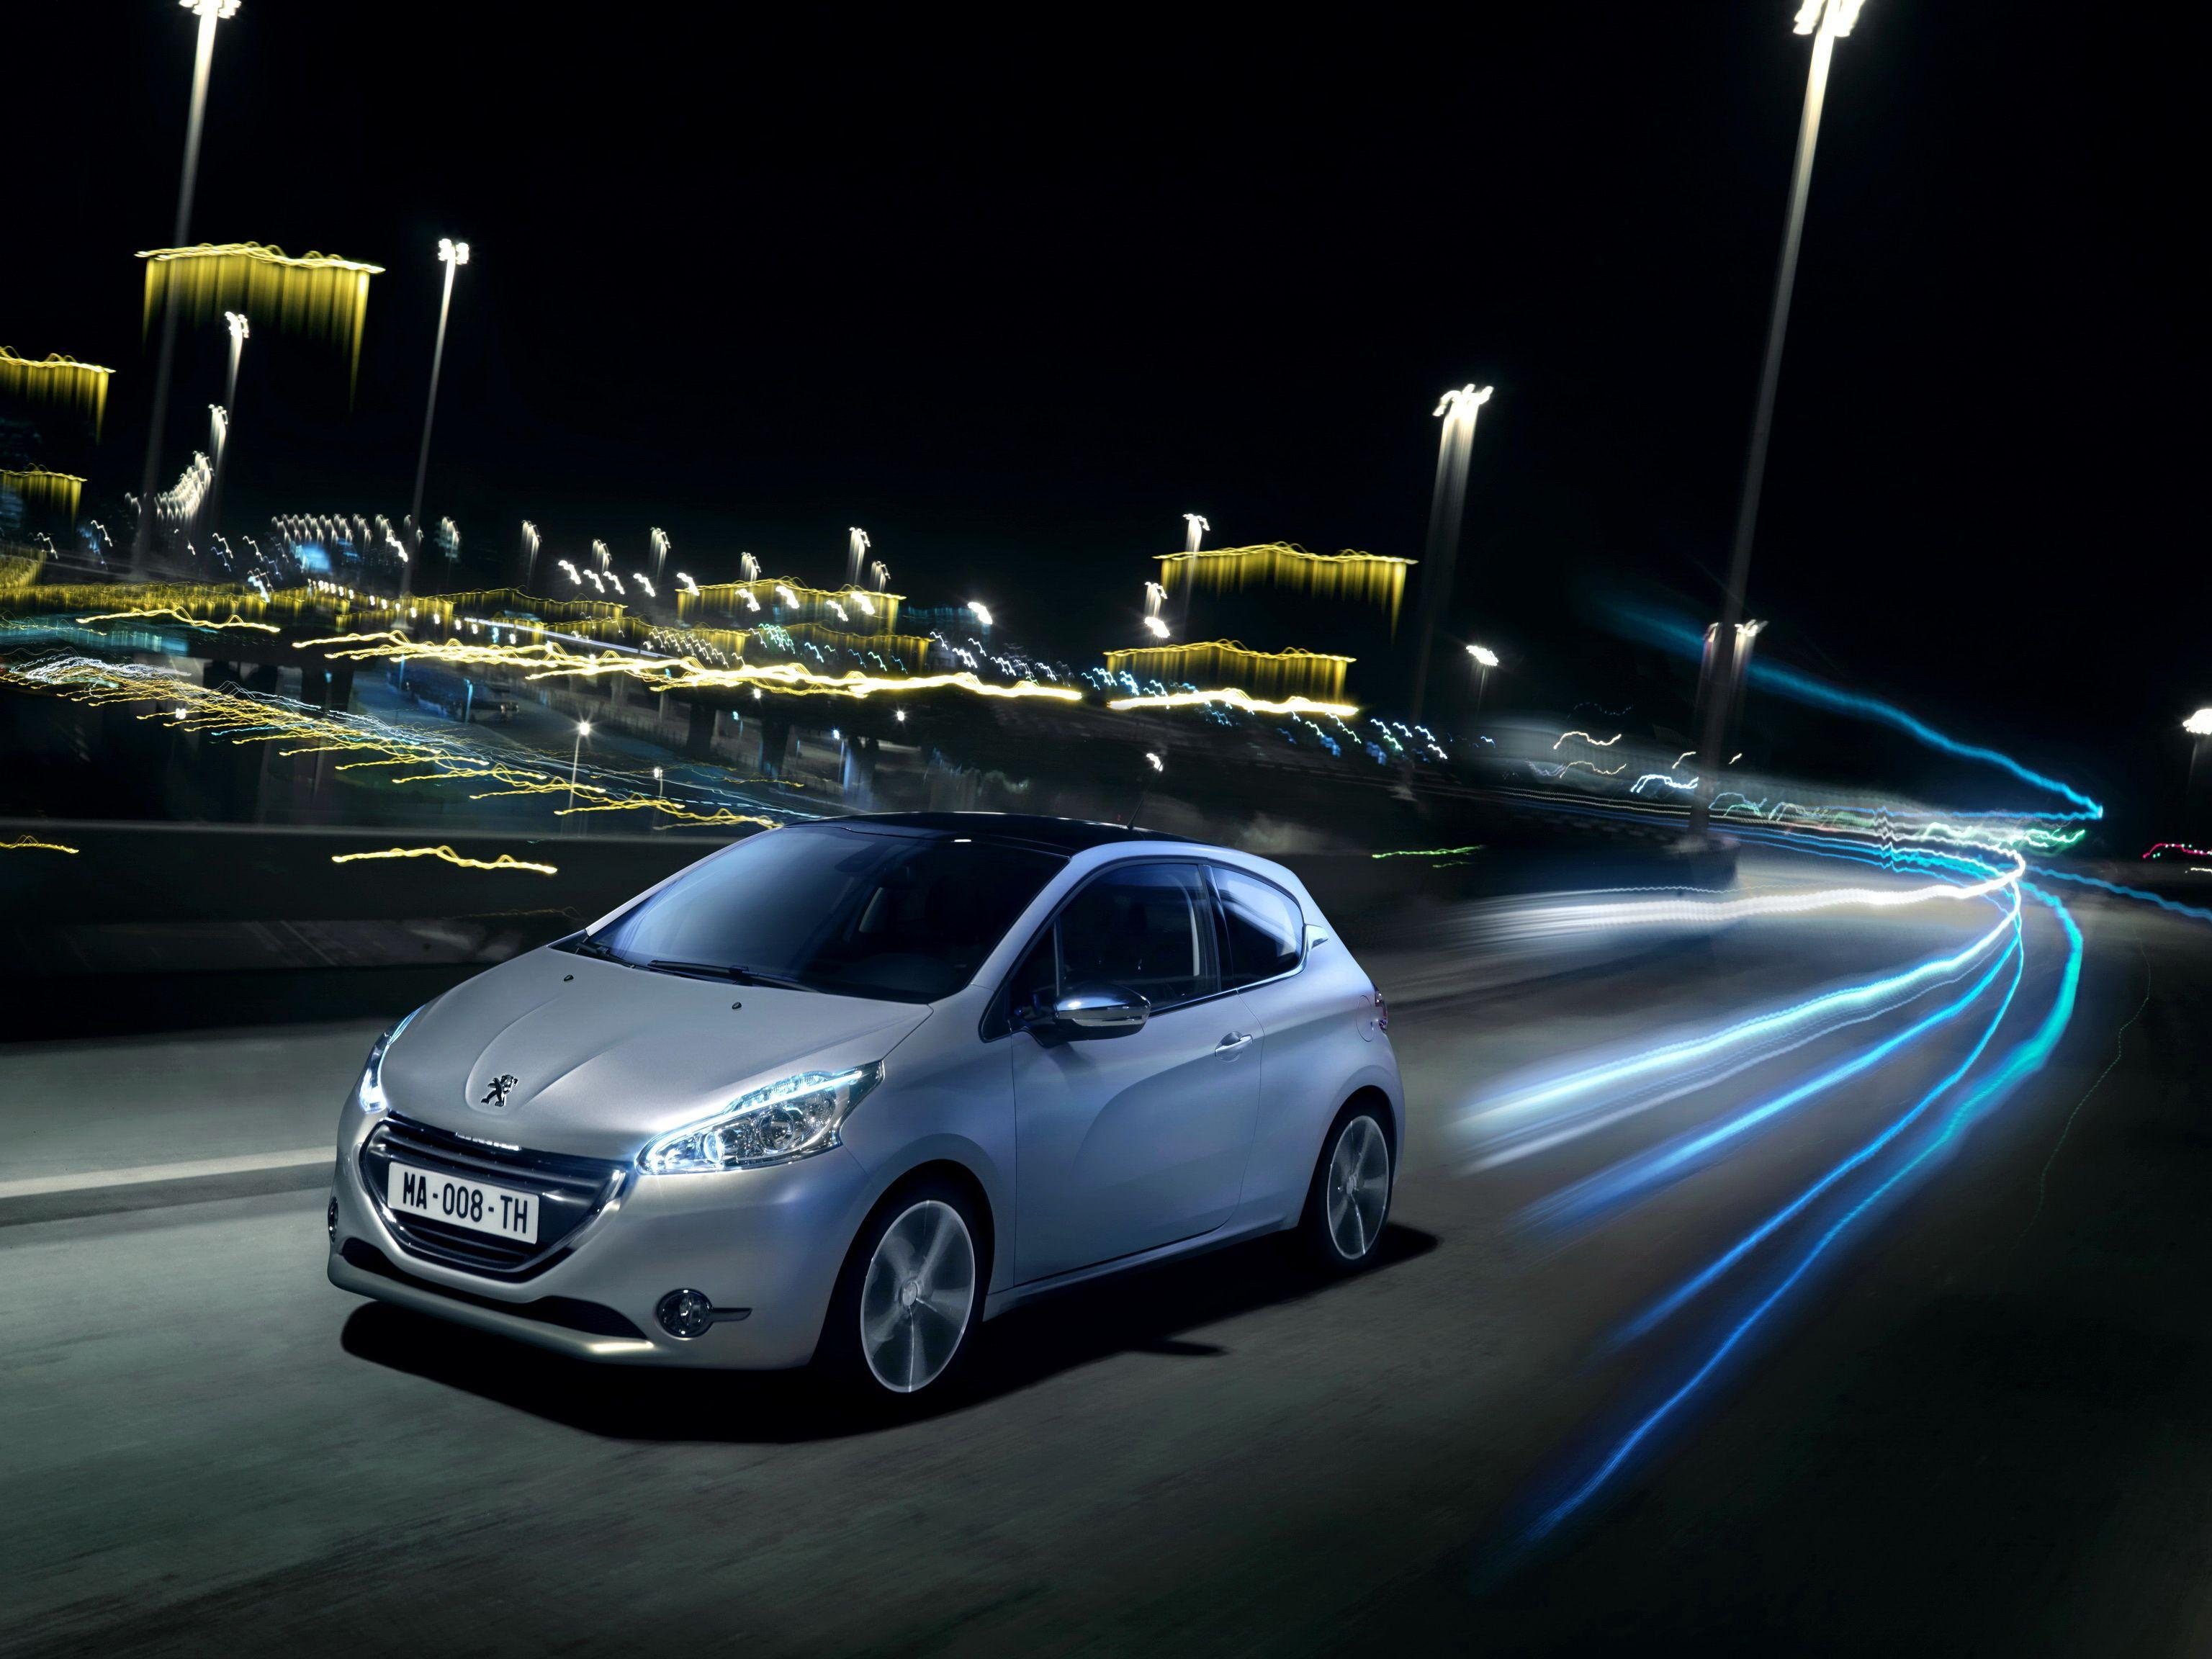 Wallpapers, Peugeot, Roads, 2011 208, Night, Cars, Download photo